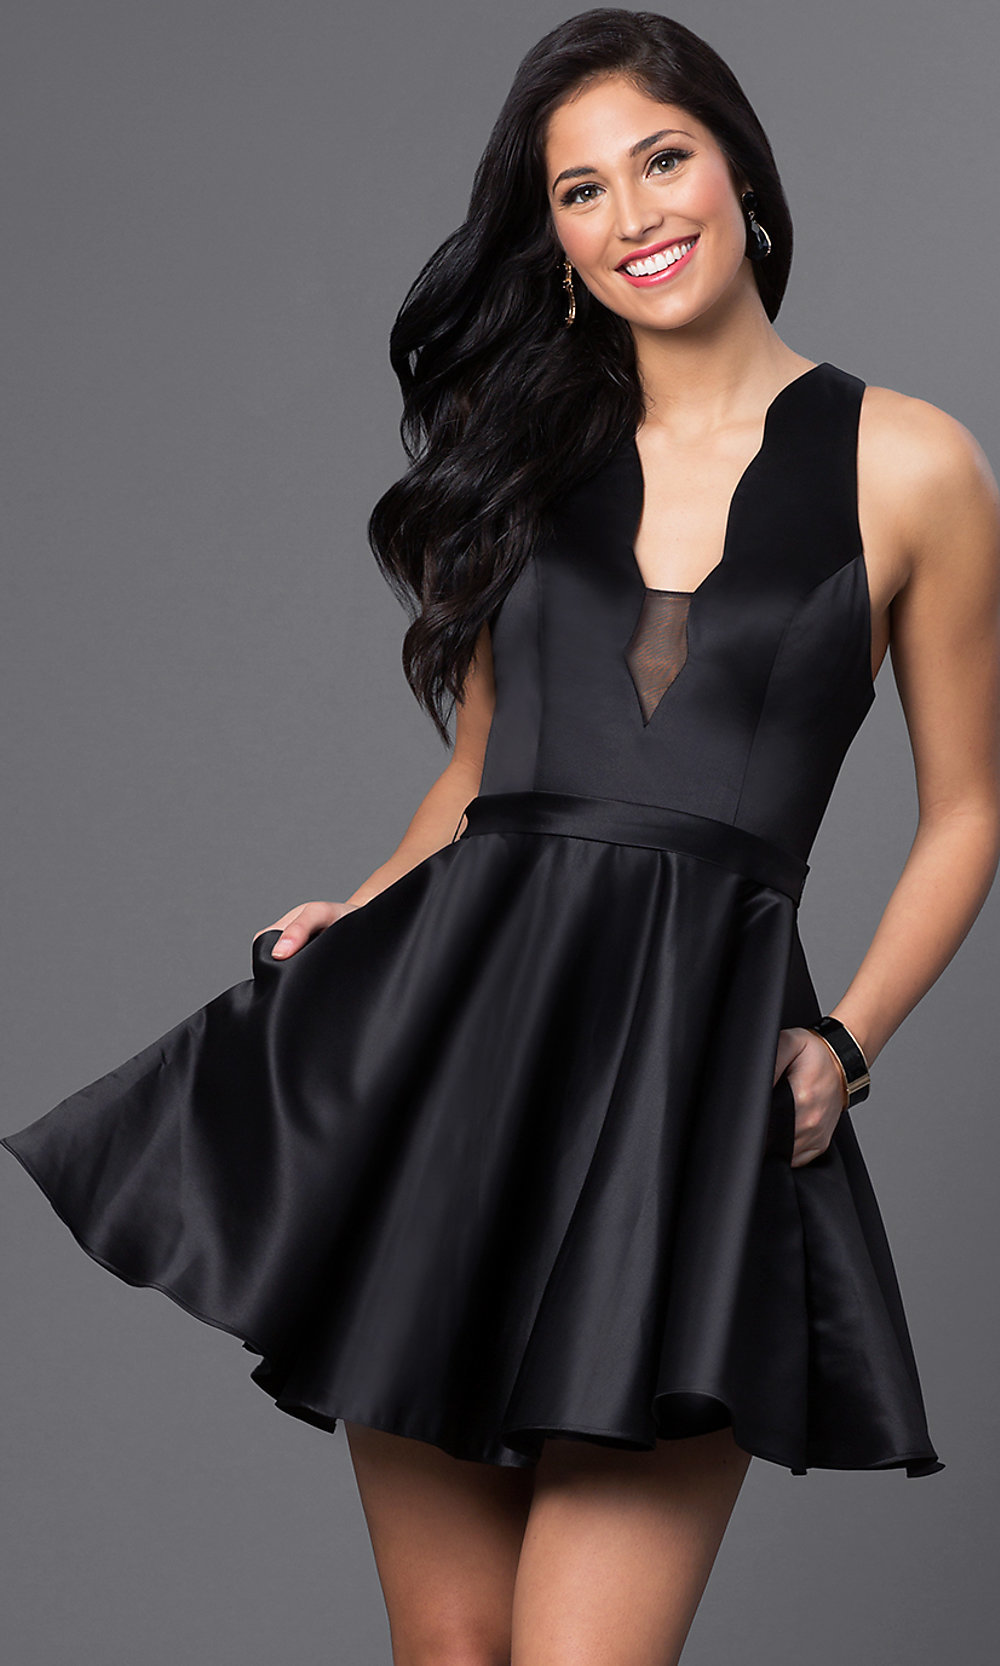 Short little black party dress with back cut outs - Hover To Zoom